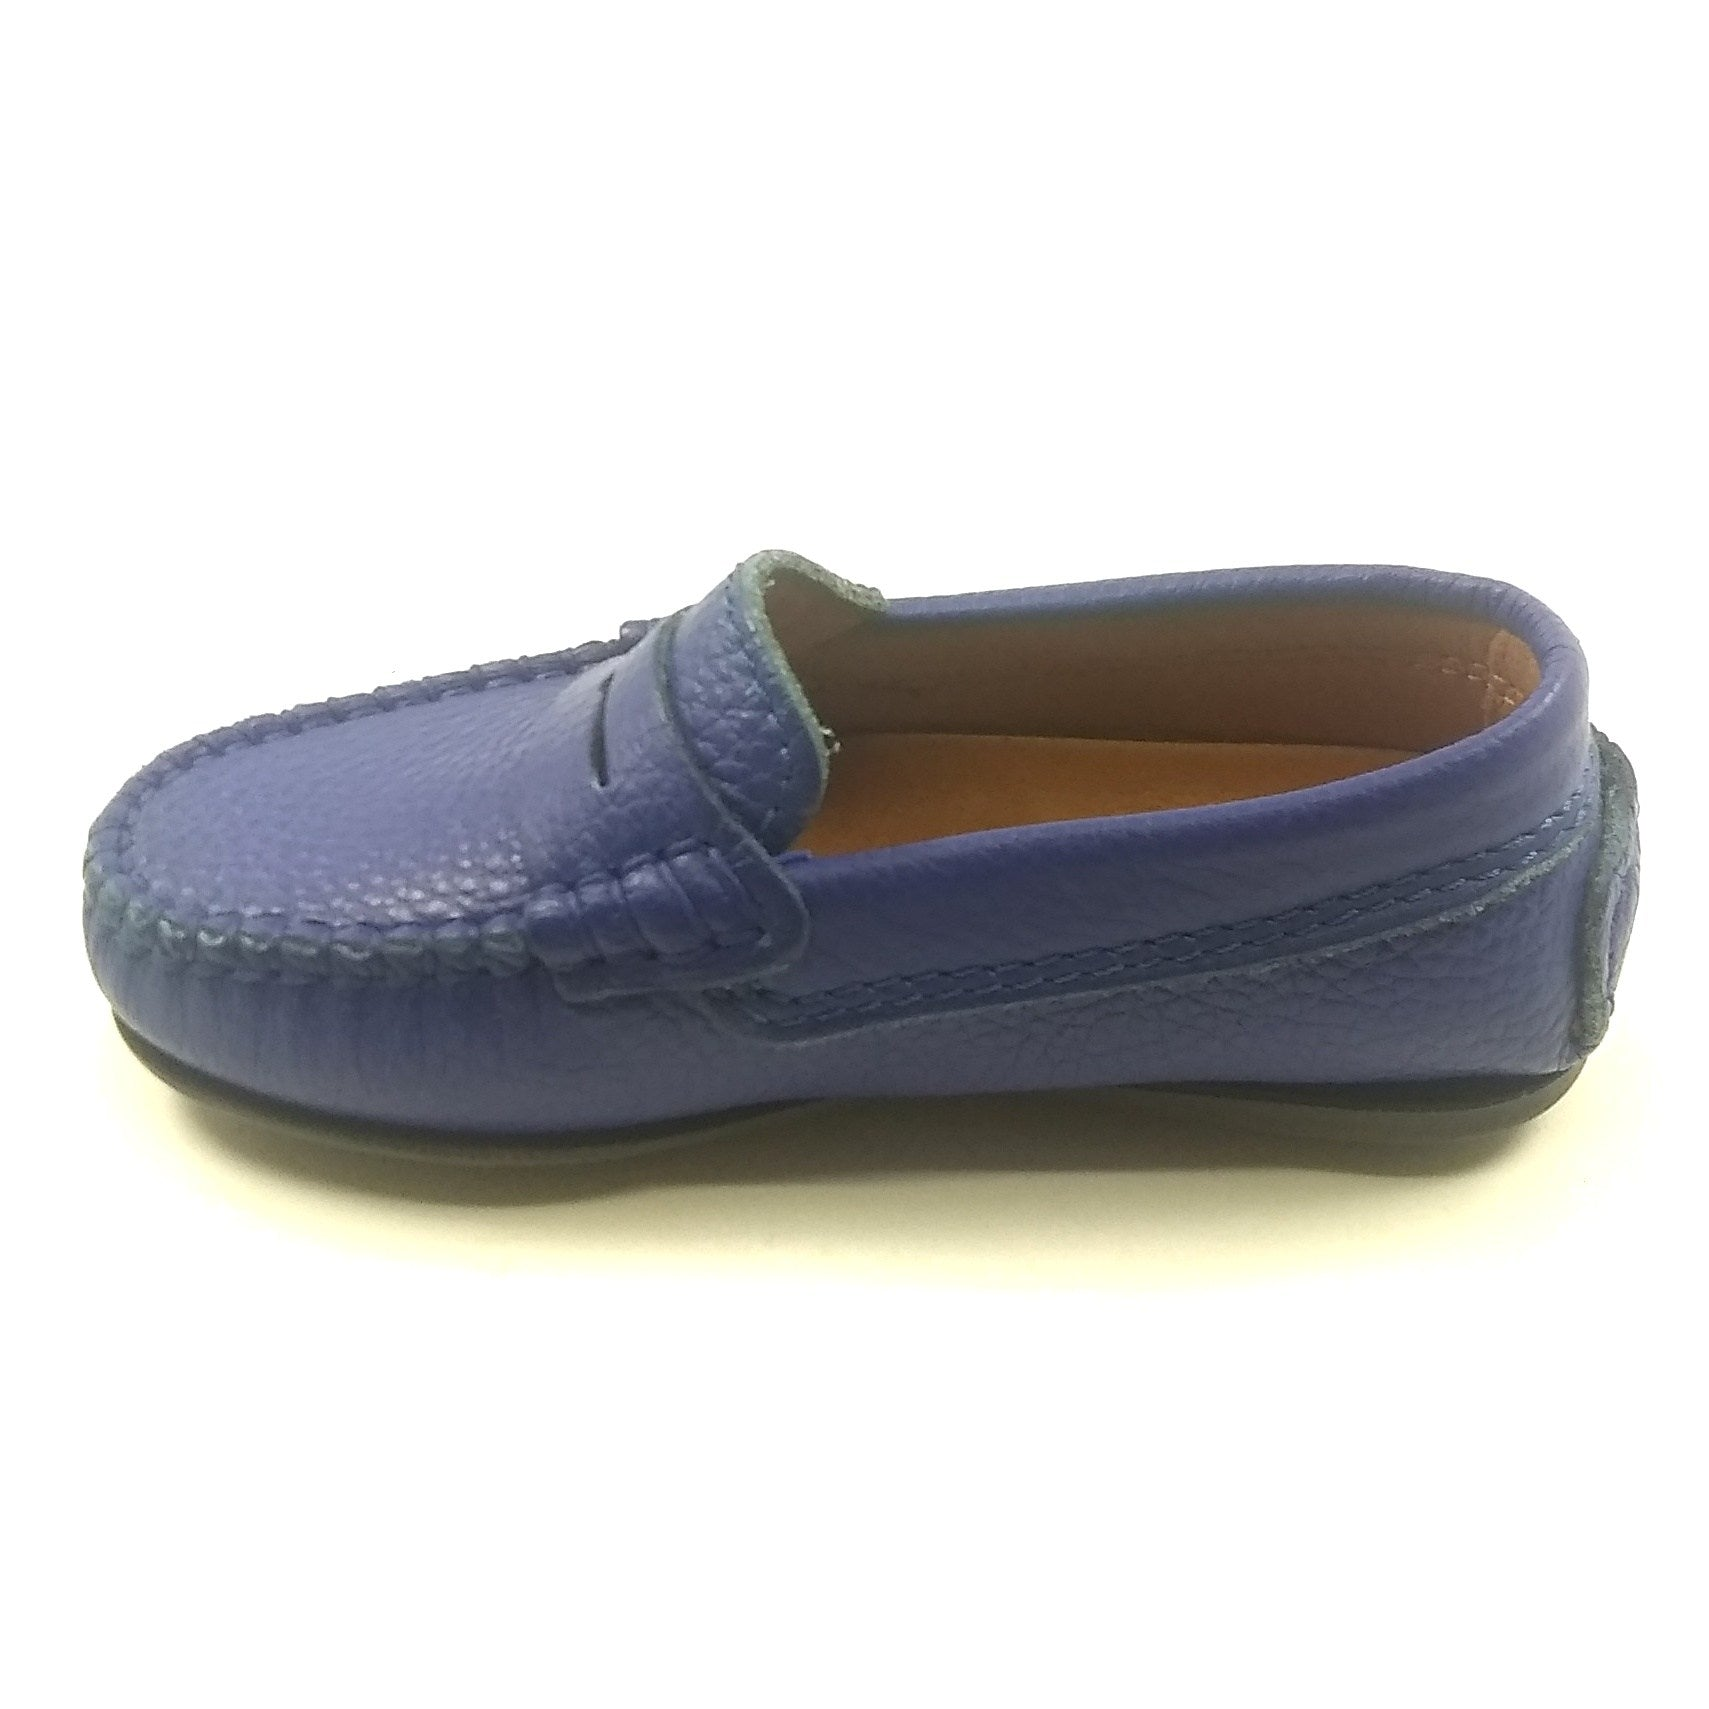 Atlanta Mocassin Blue Loafer